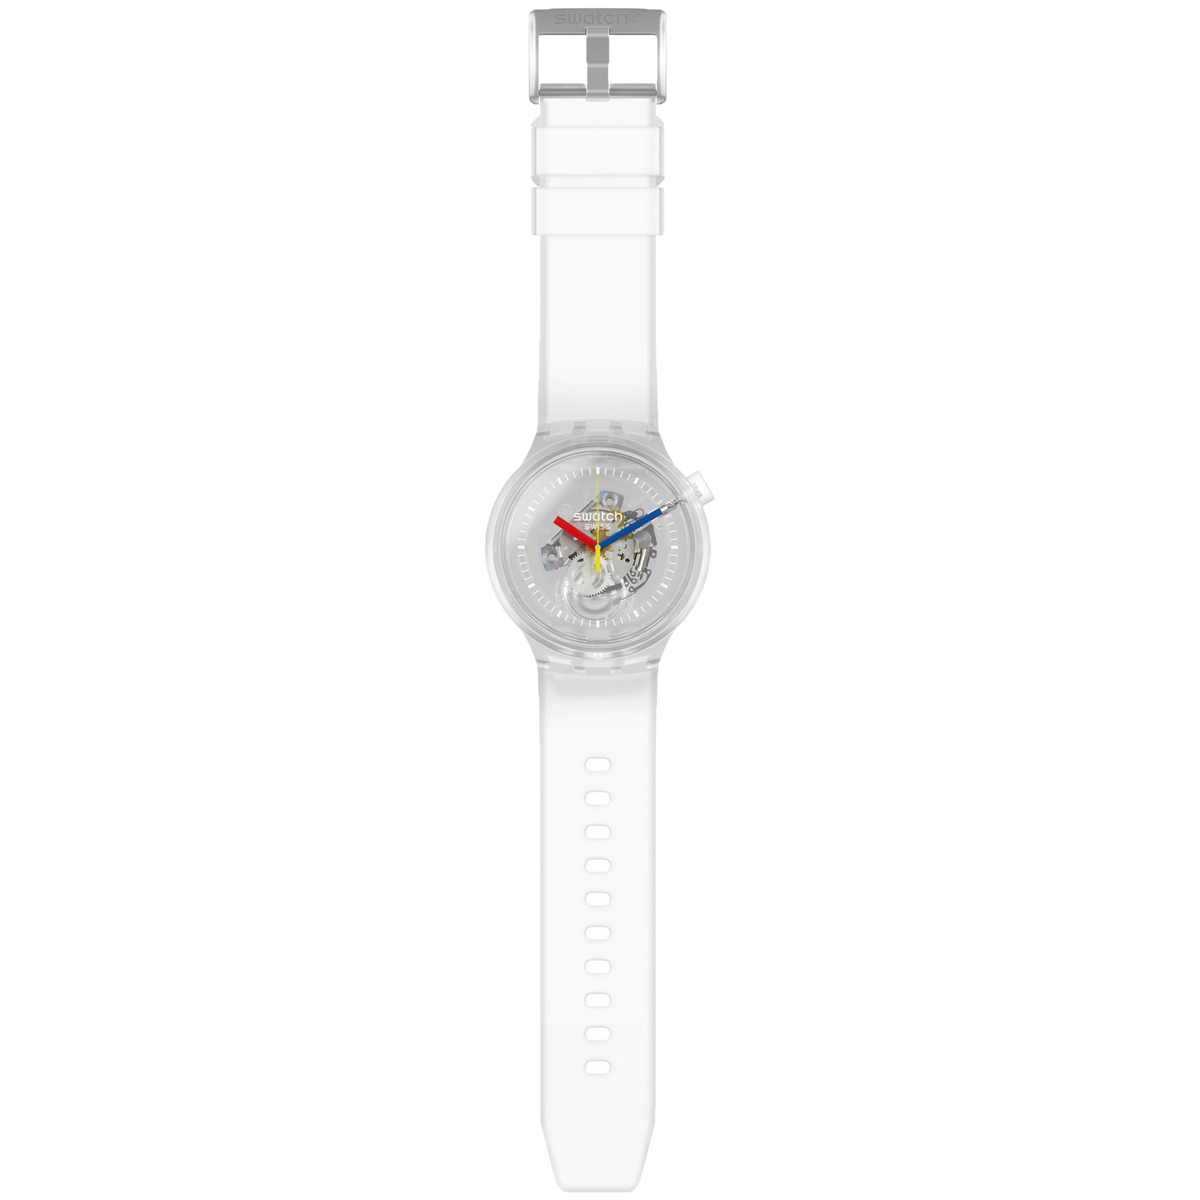 Swatch Watch Big Bold 47mm - JellyFish